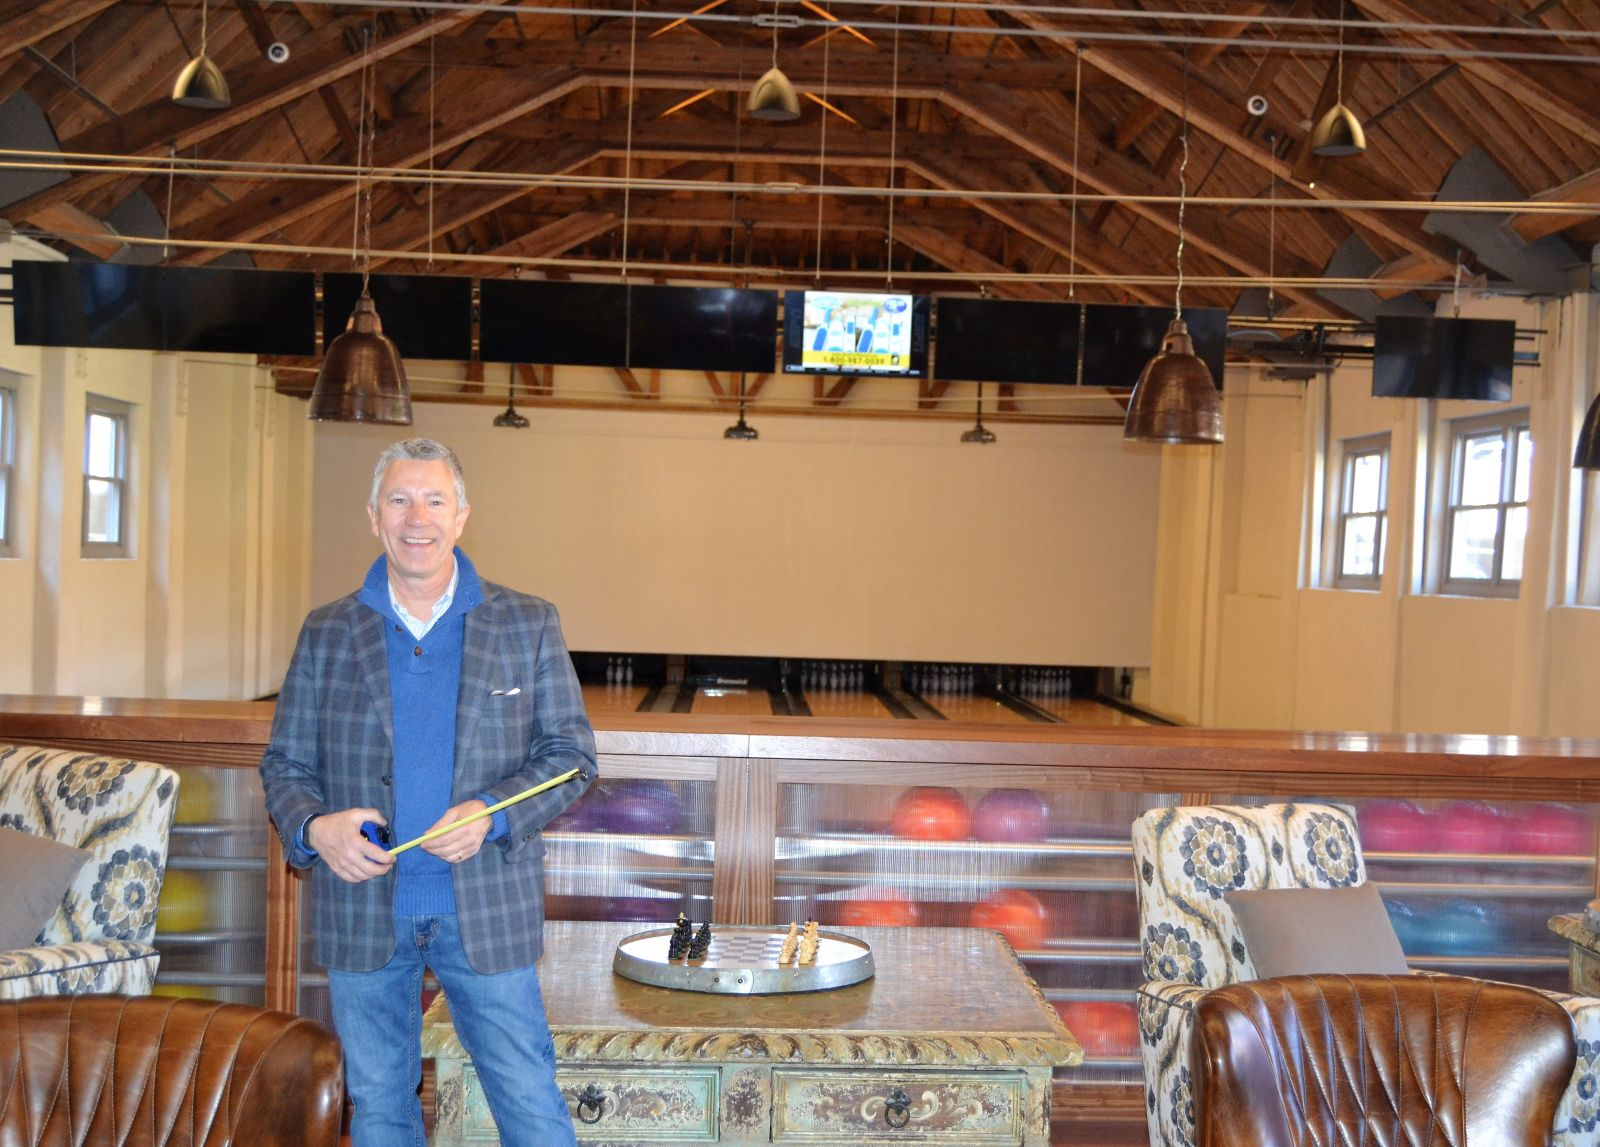 Columbia developer Scott Middleton is eager for The Grand to open the doors to its restaurant, bar and boutique bowling alley. (Photo/Melinda Waldrop)